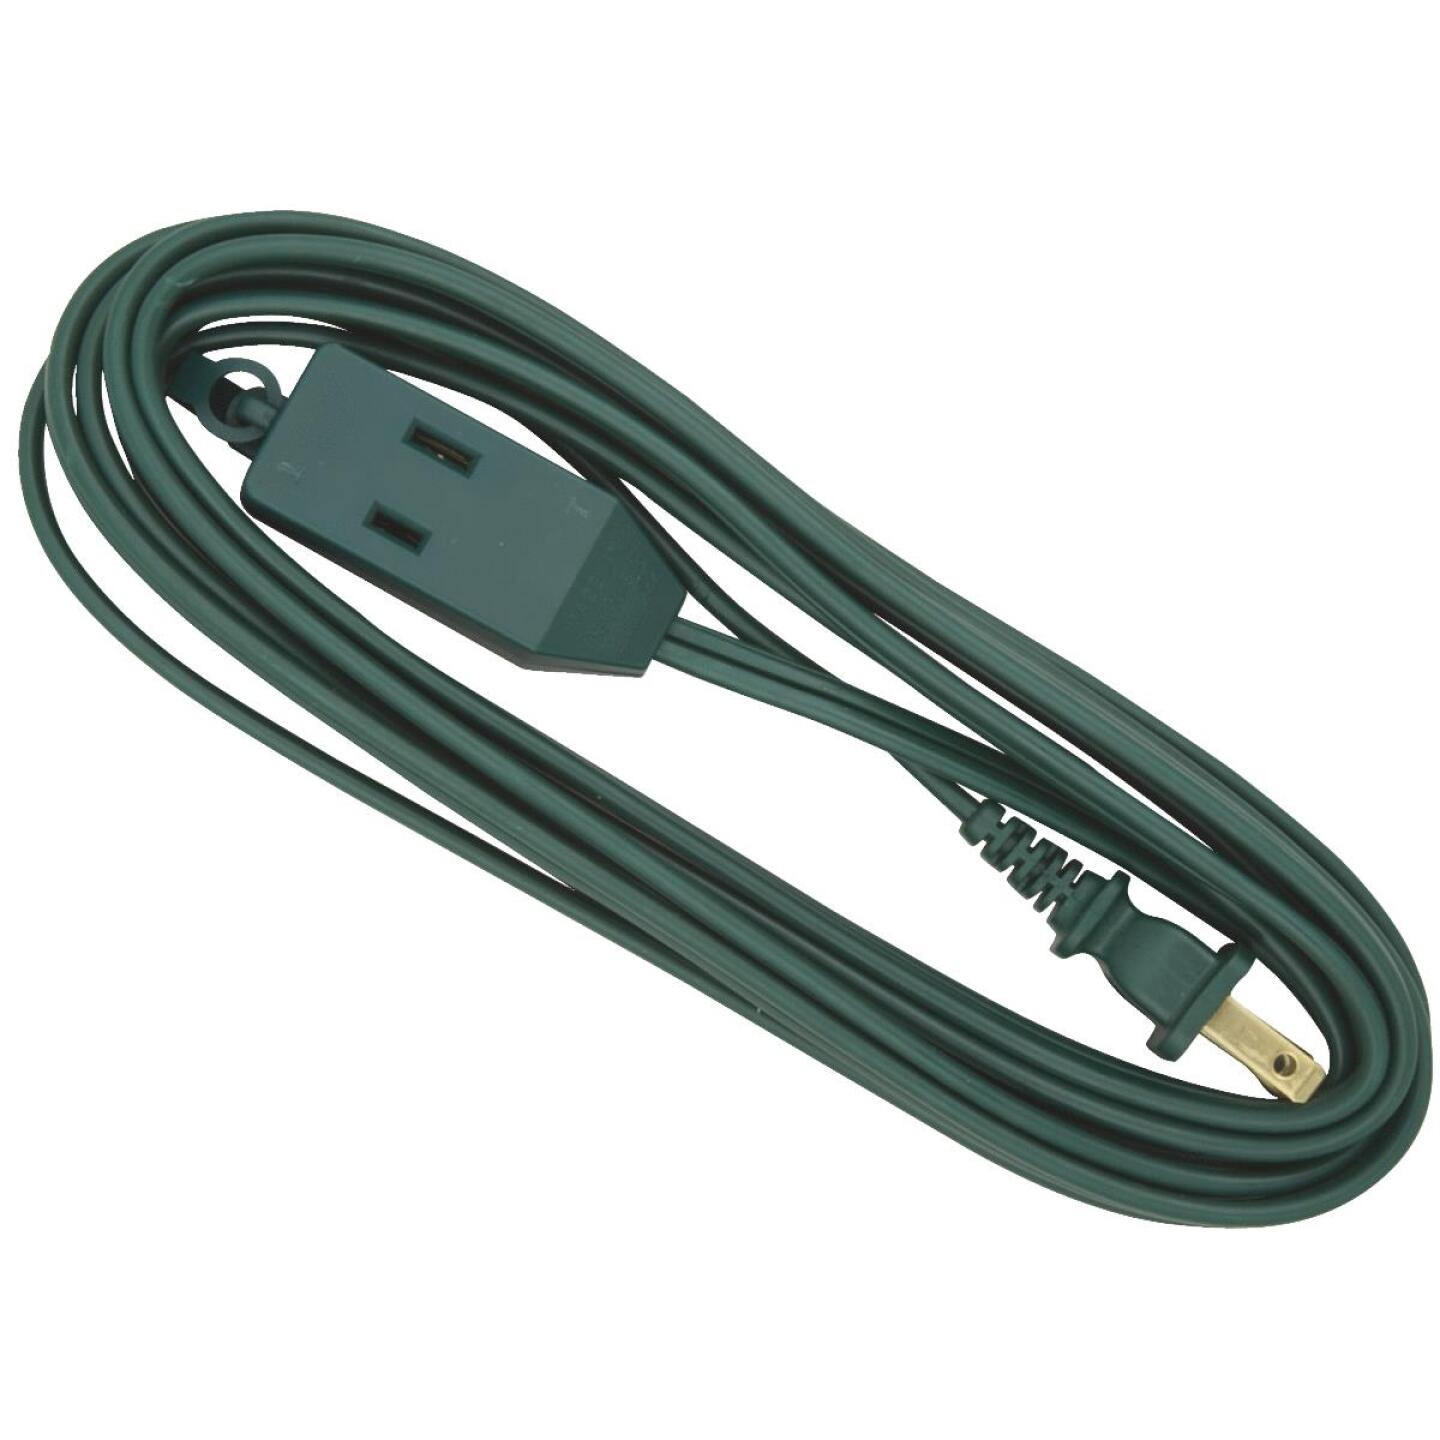 Do it 12 Ft. 16/2 Green Cube Tap Extension Cord Image 1